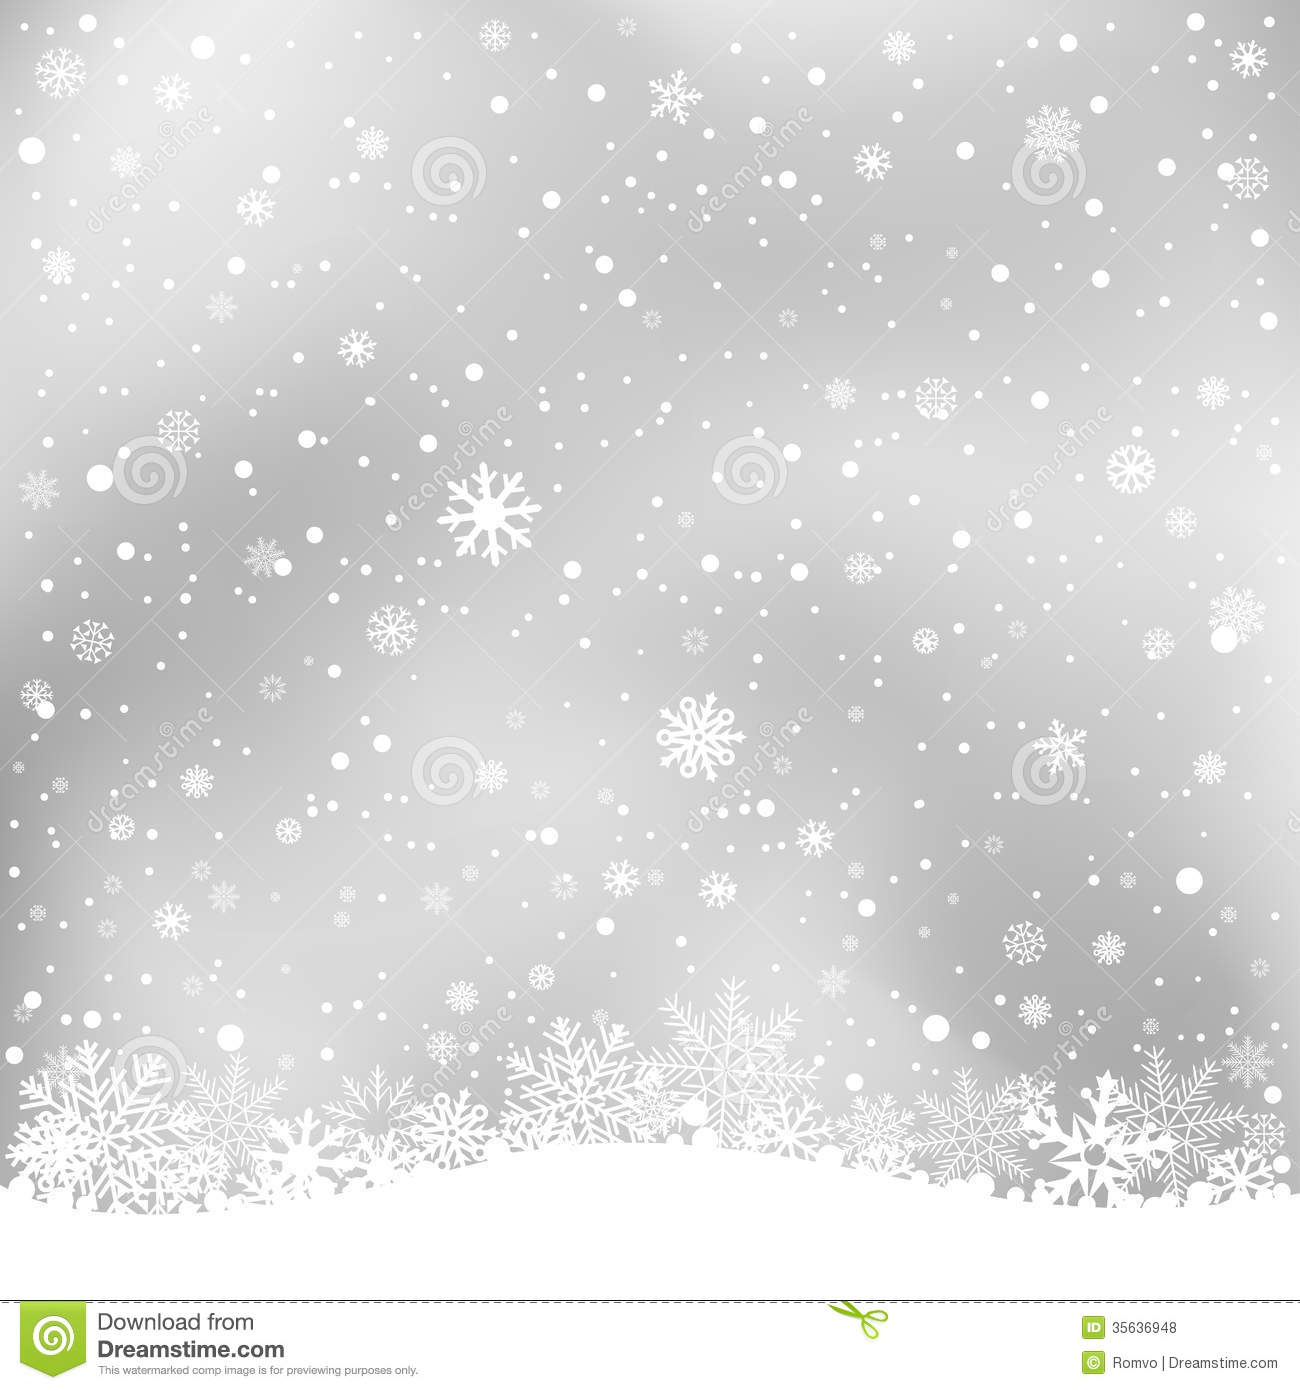 Iphone 5 Falling Snow Wallpaper Winter Gray Background Royalty Free Stock Photos Image